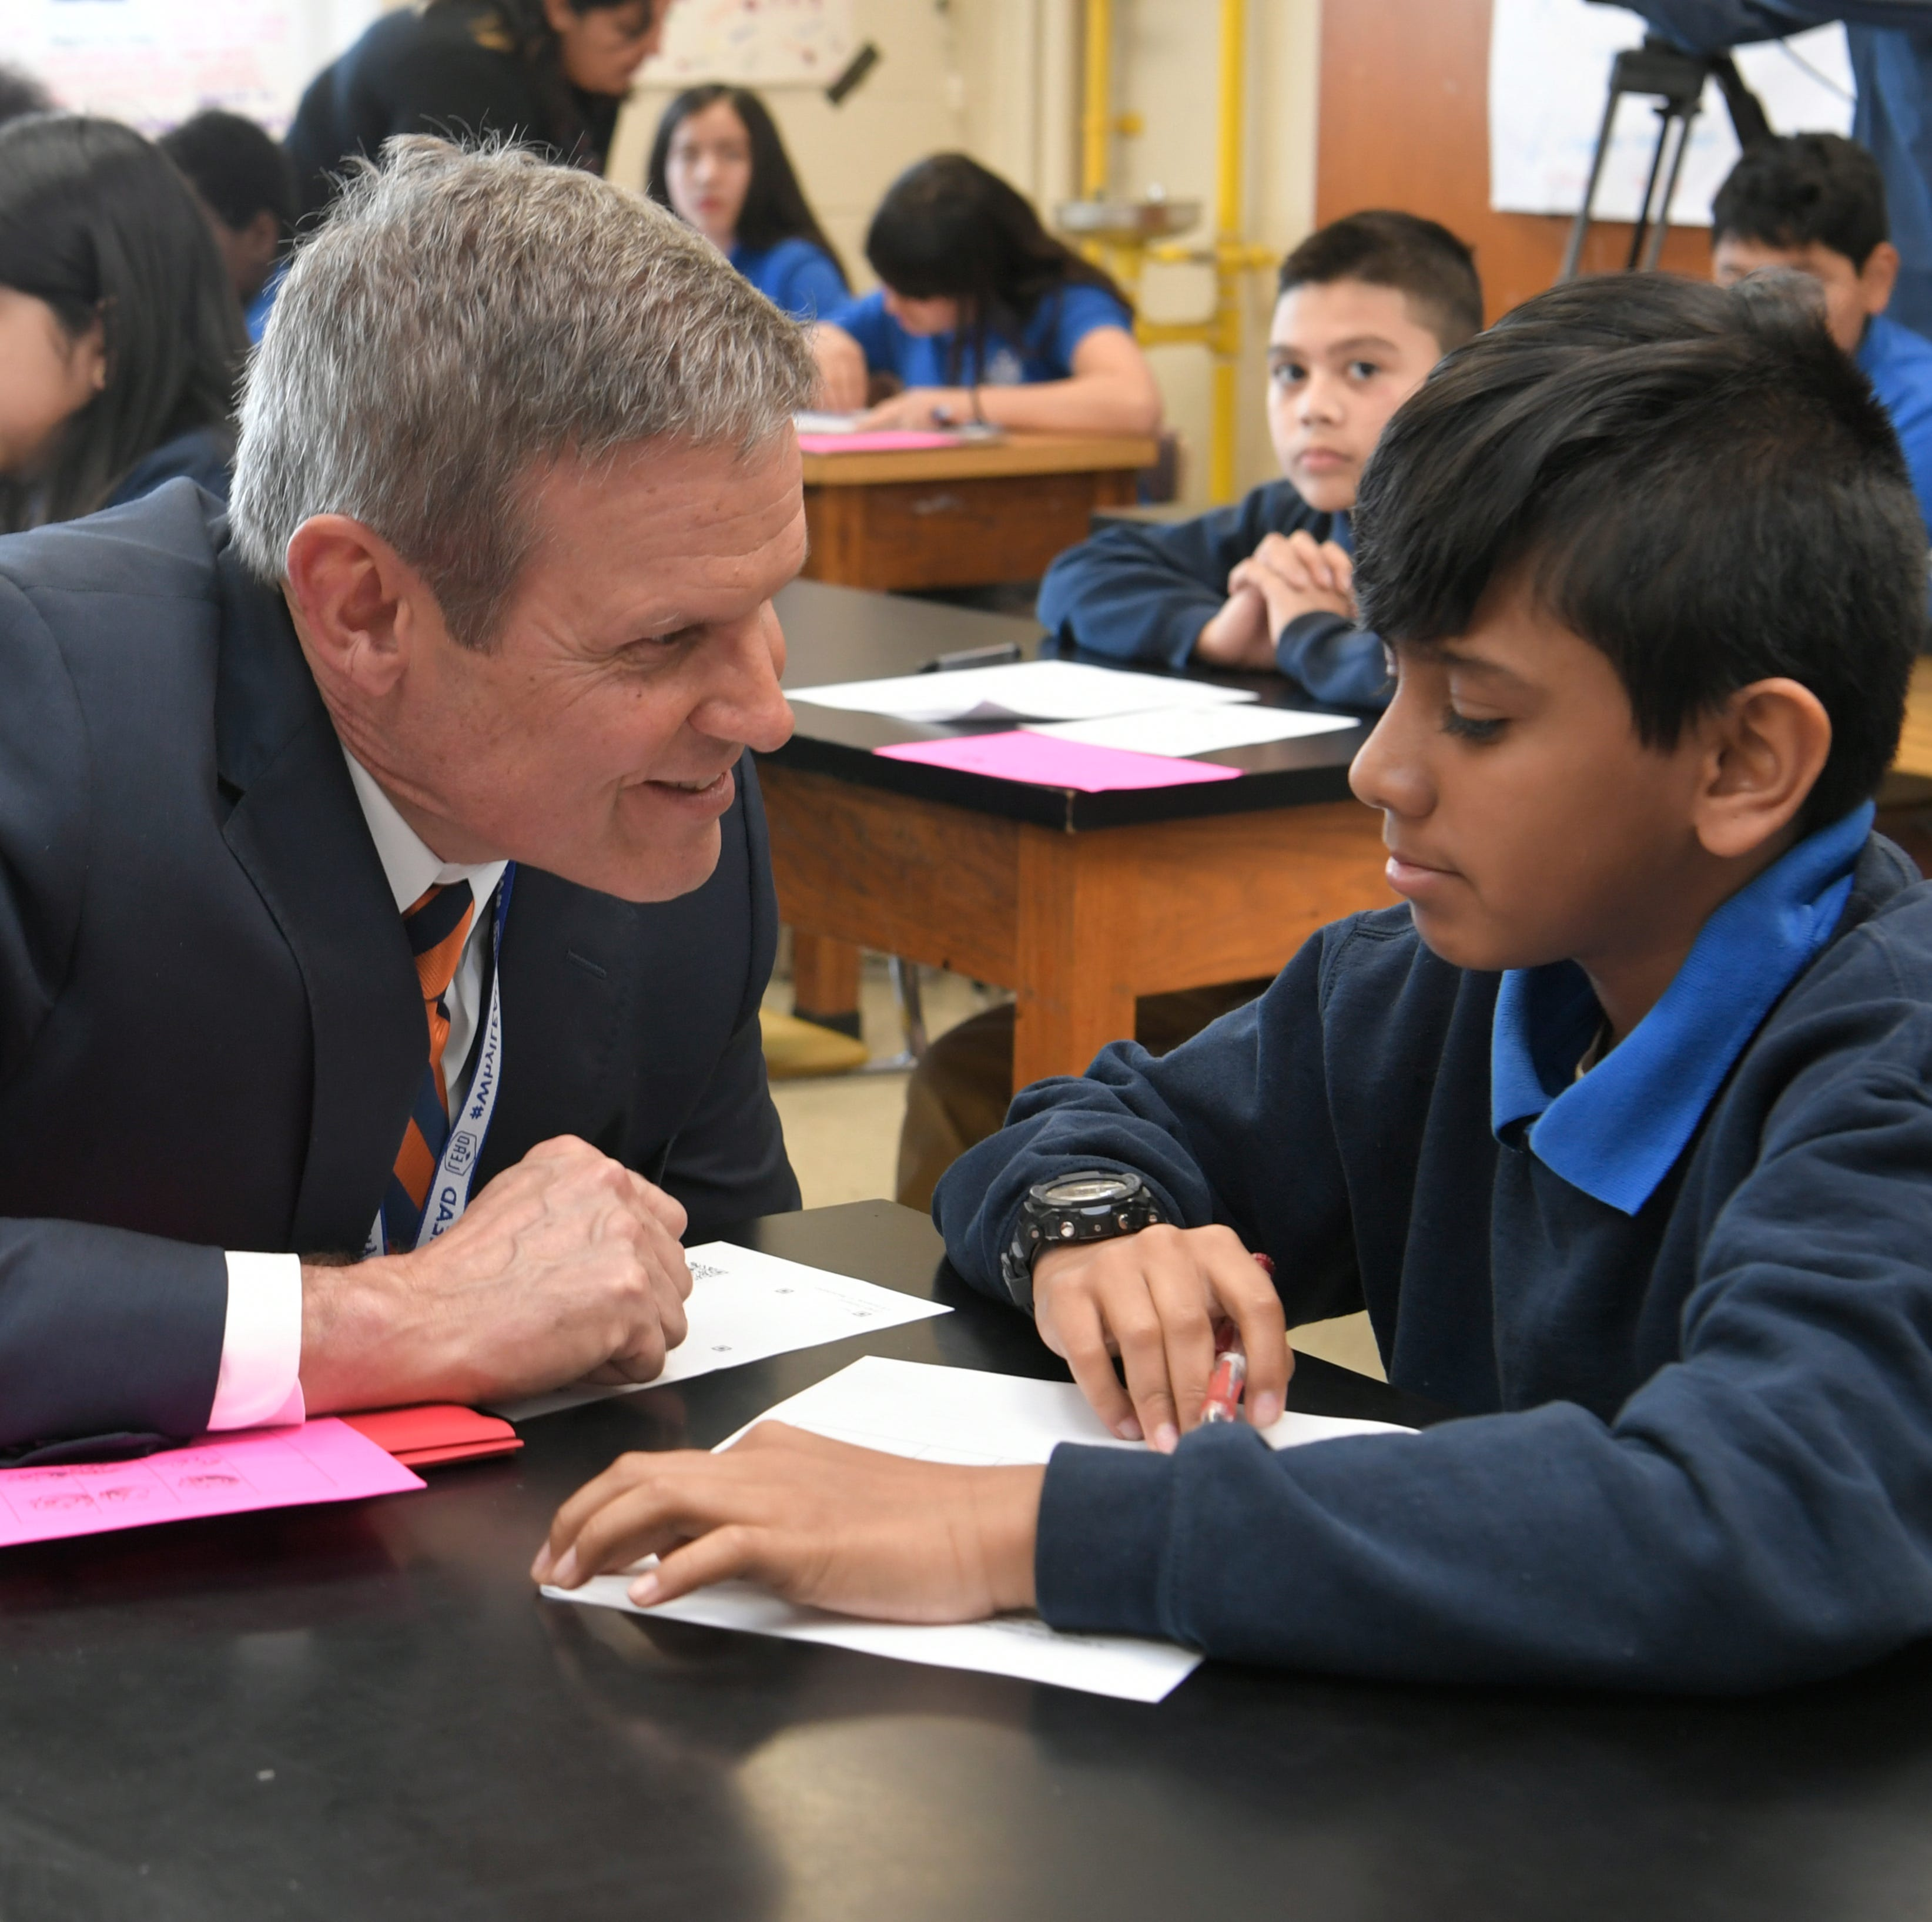 Tennessee school voucher bill: Lawmakers, Gov. Bill Lee are at odds over proposal, here's what to know